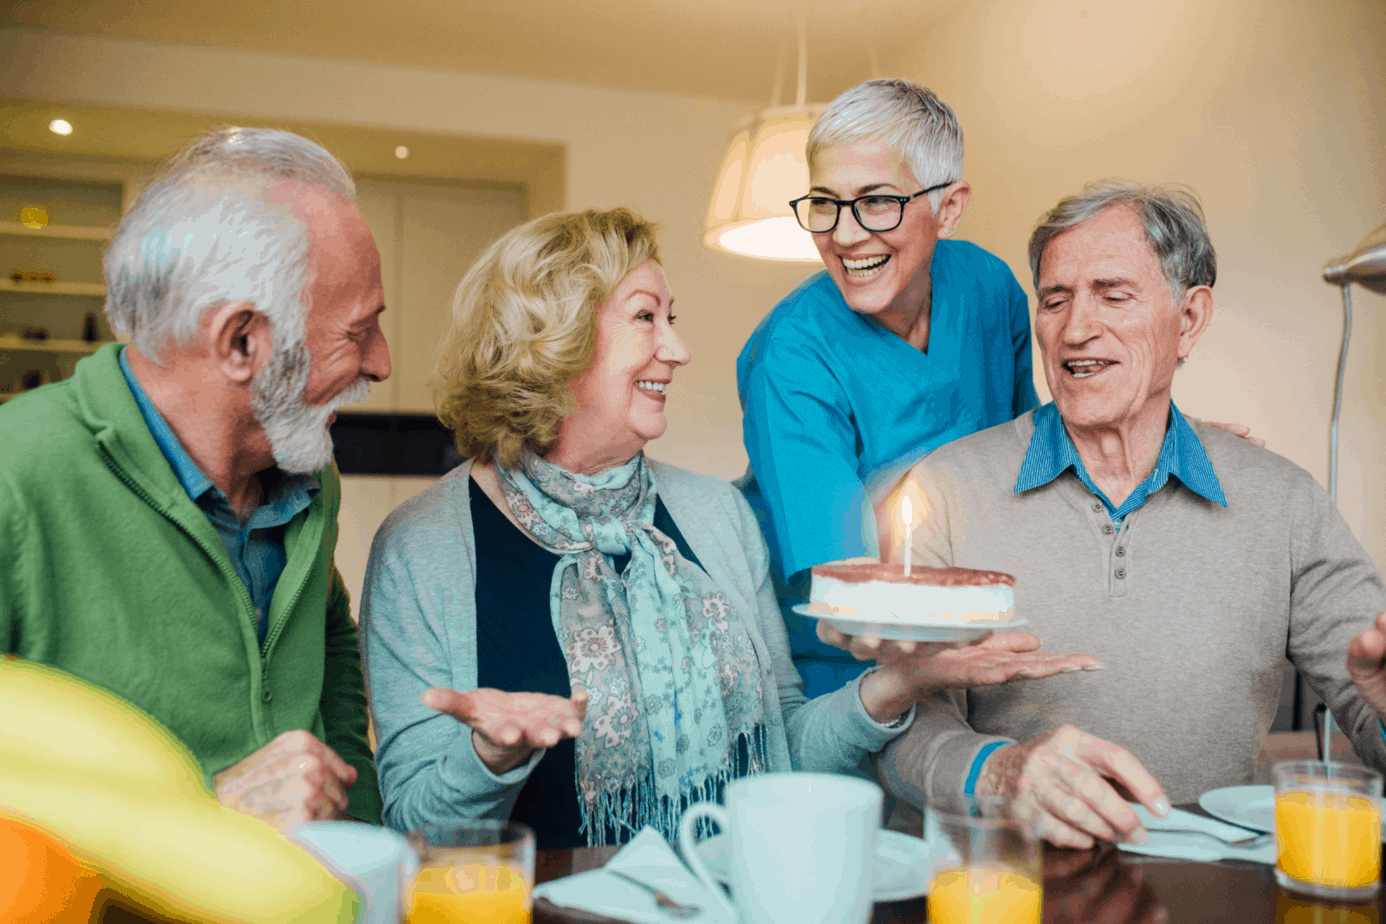 group of seniors celebrating a friend's birthday with a strawberry cake